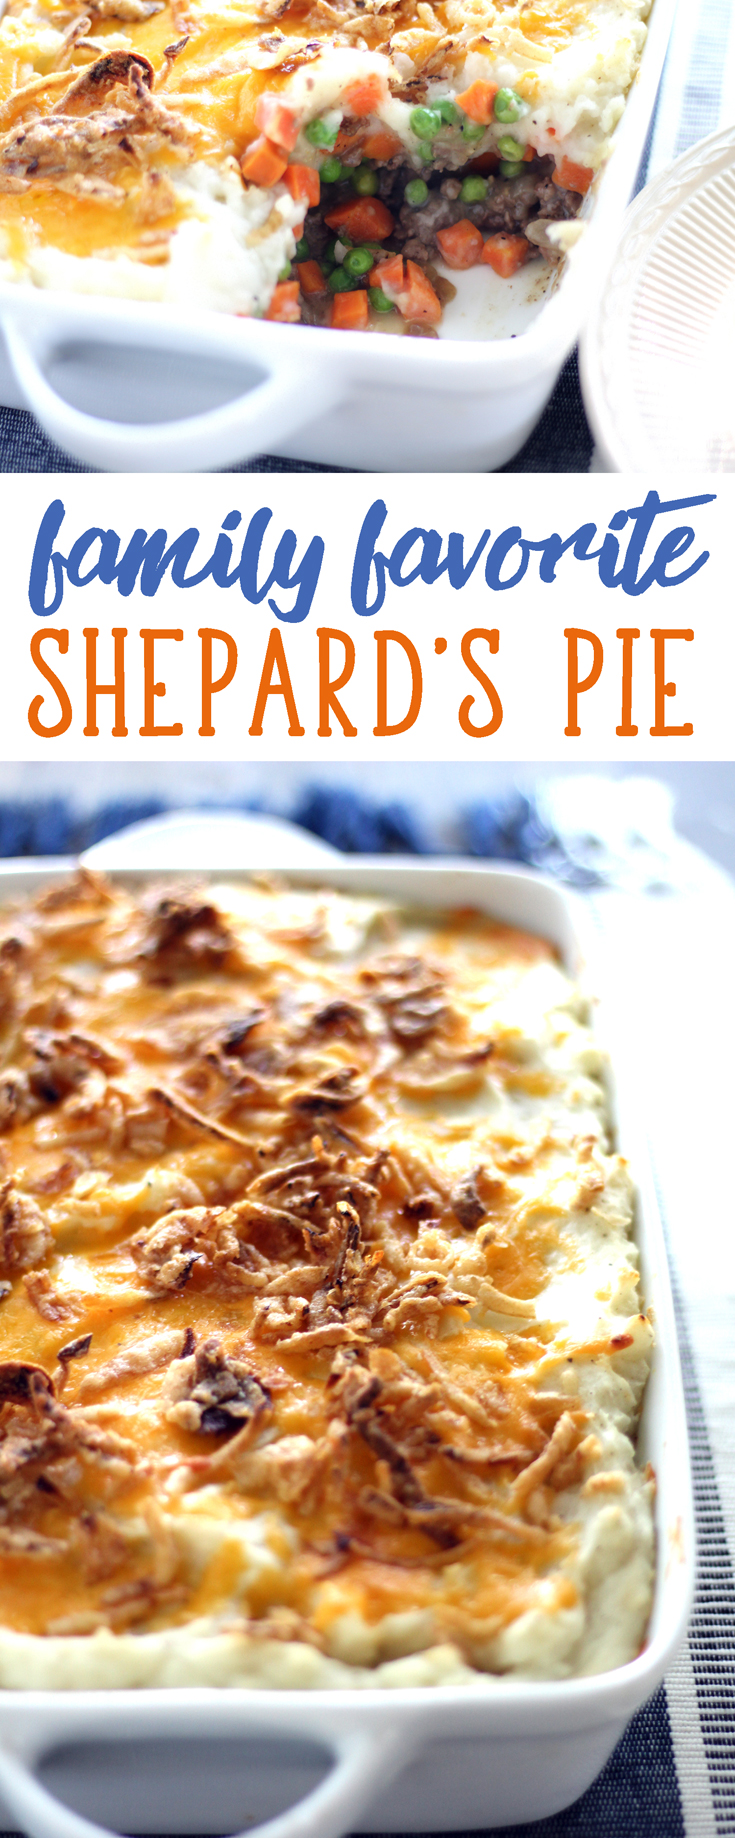 Our family loves Shepards Pie. When I ask,